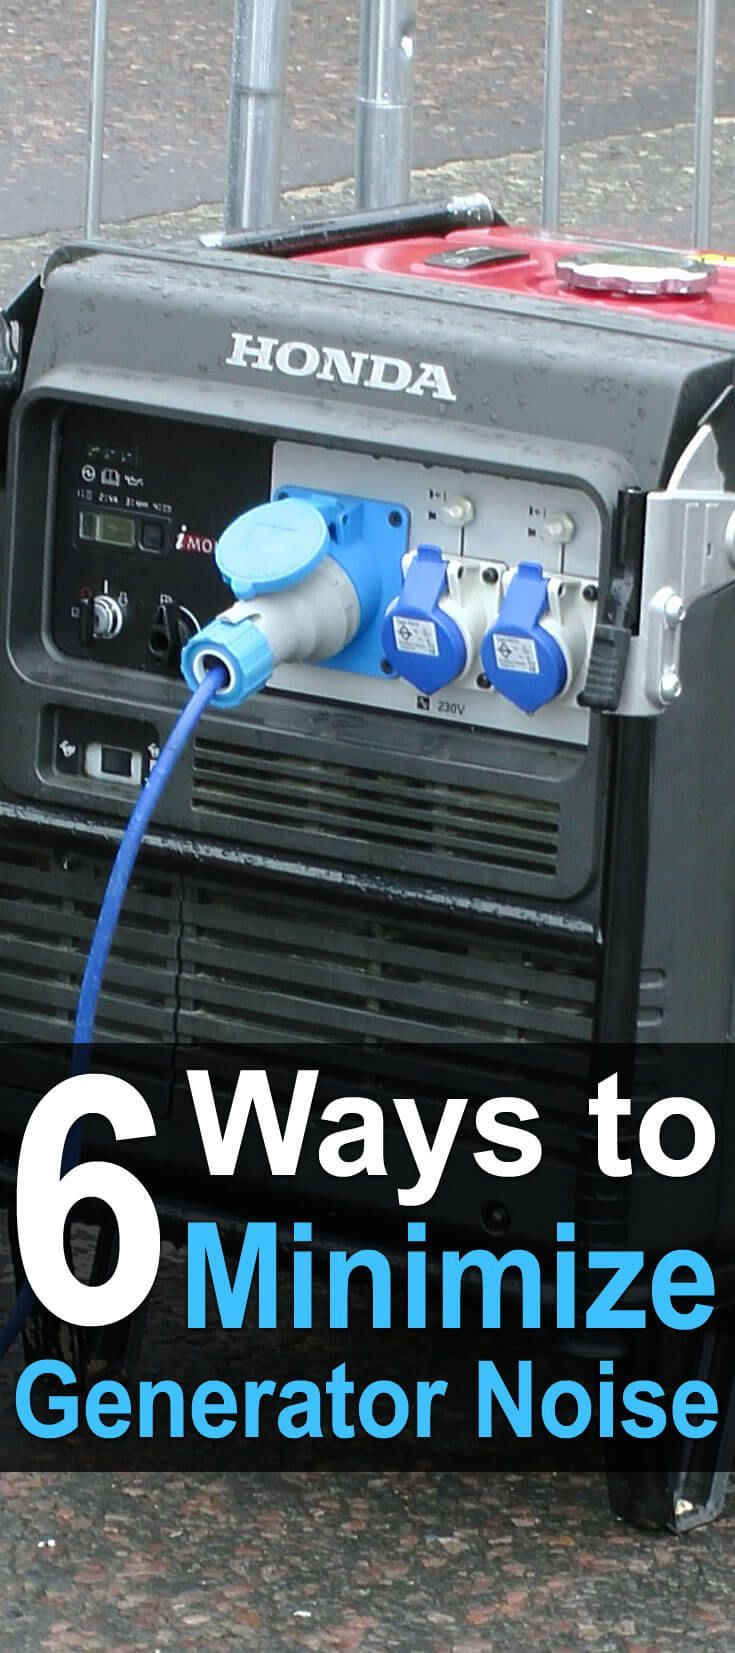 5 Ways to Minimize Generator Noise | For. the. RV | Pinterest ...